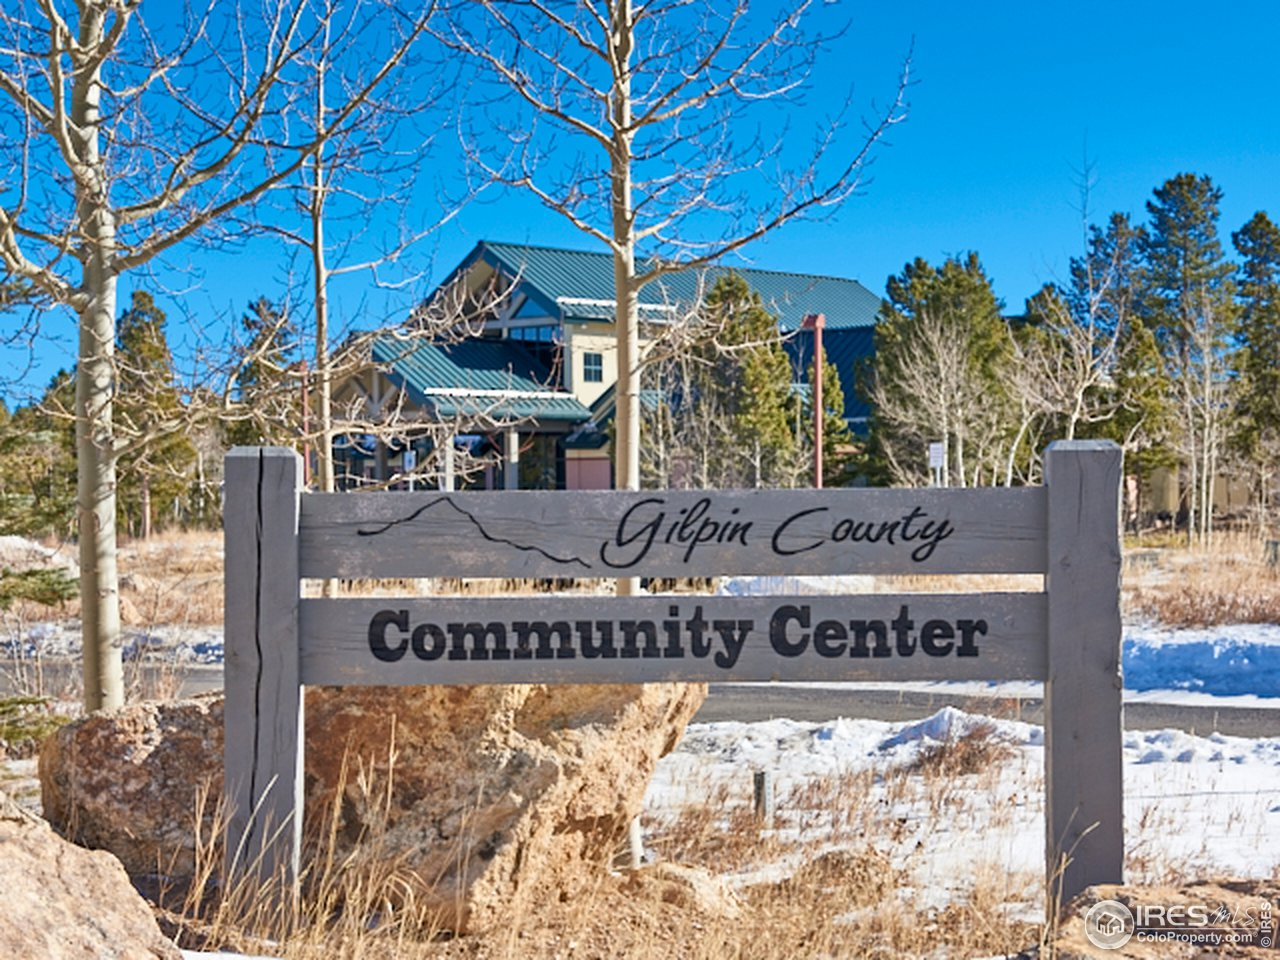 Gilpin County Community Center